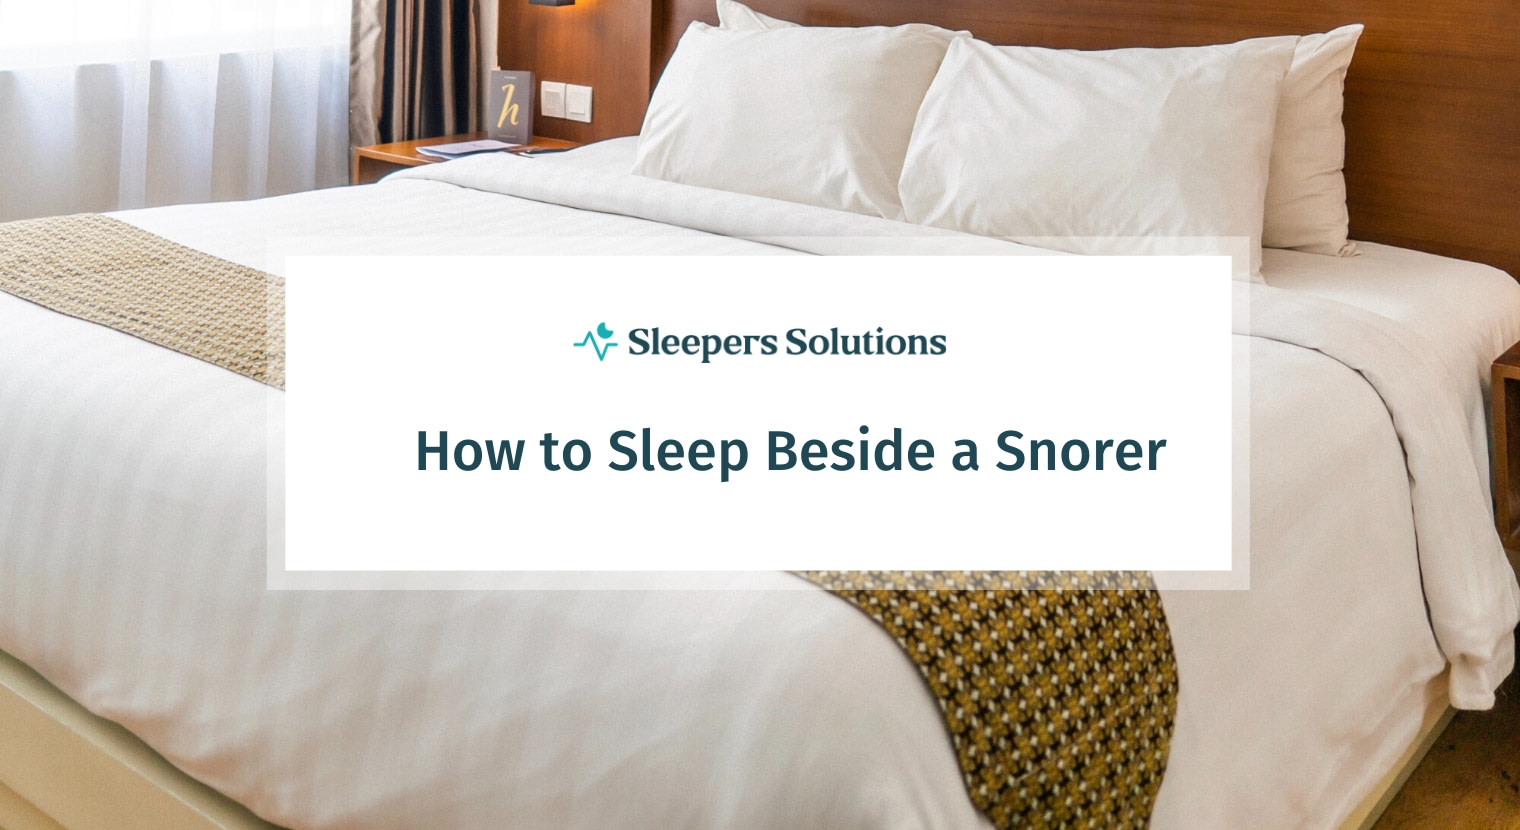 How to Sleep Beside a Snorer